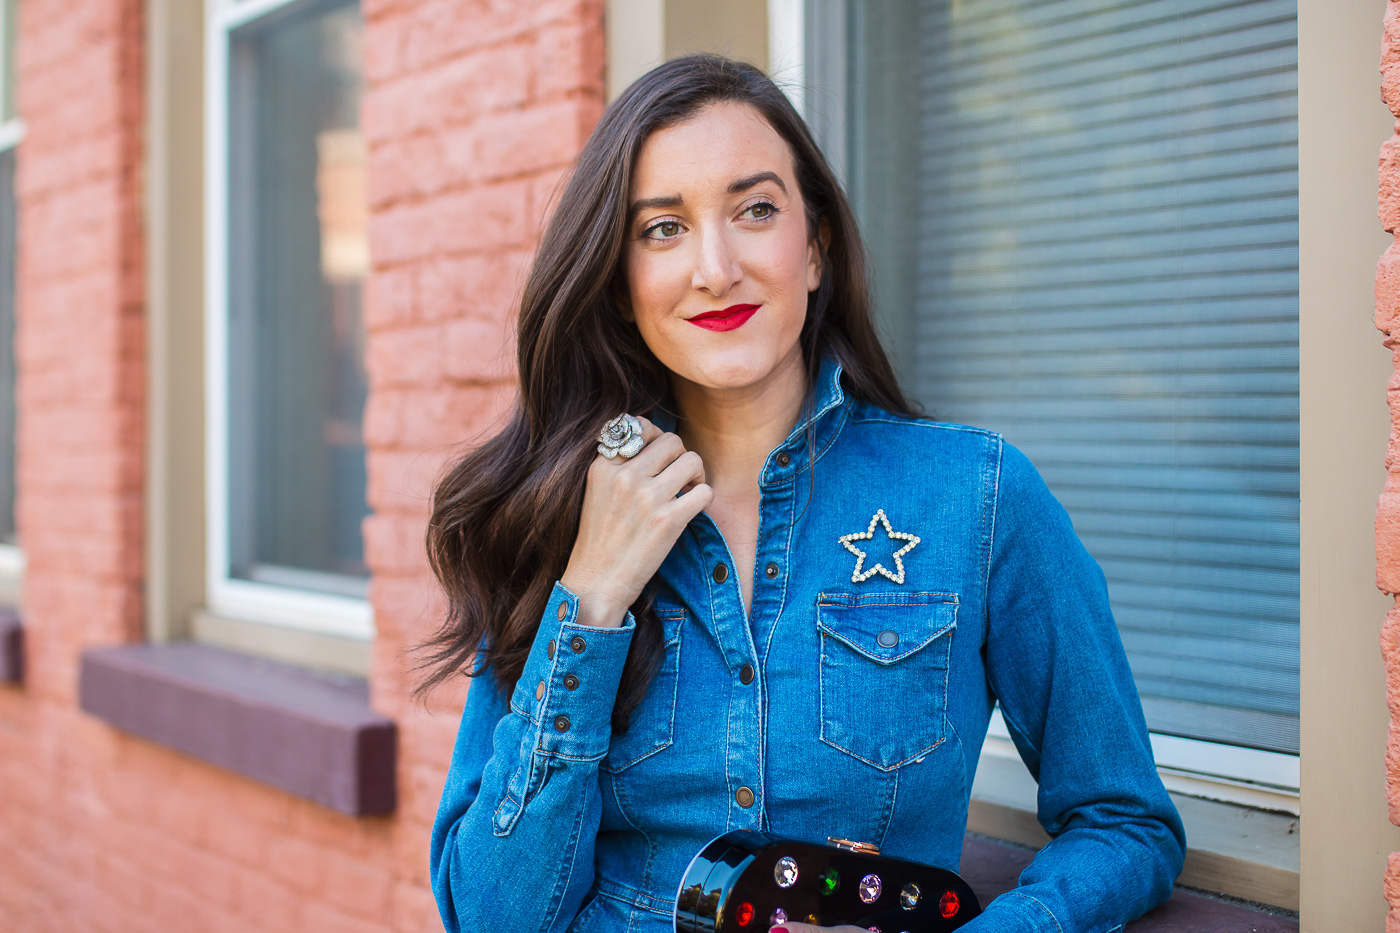 Vintage Brooch worn by Cincinnati blogger Olivia Johnson